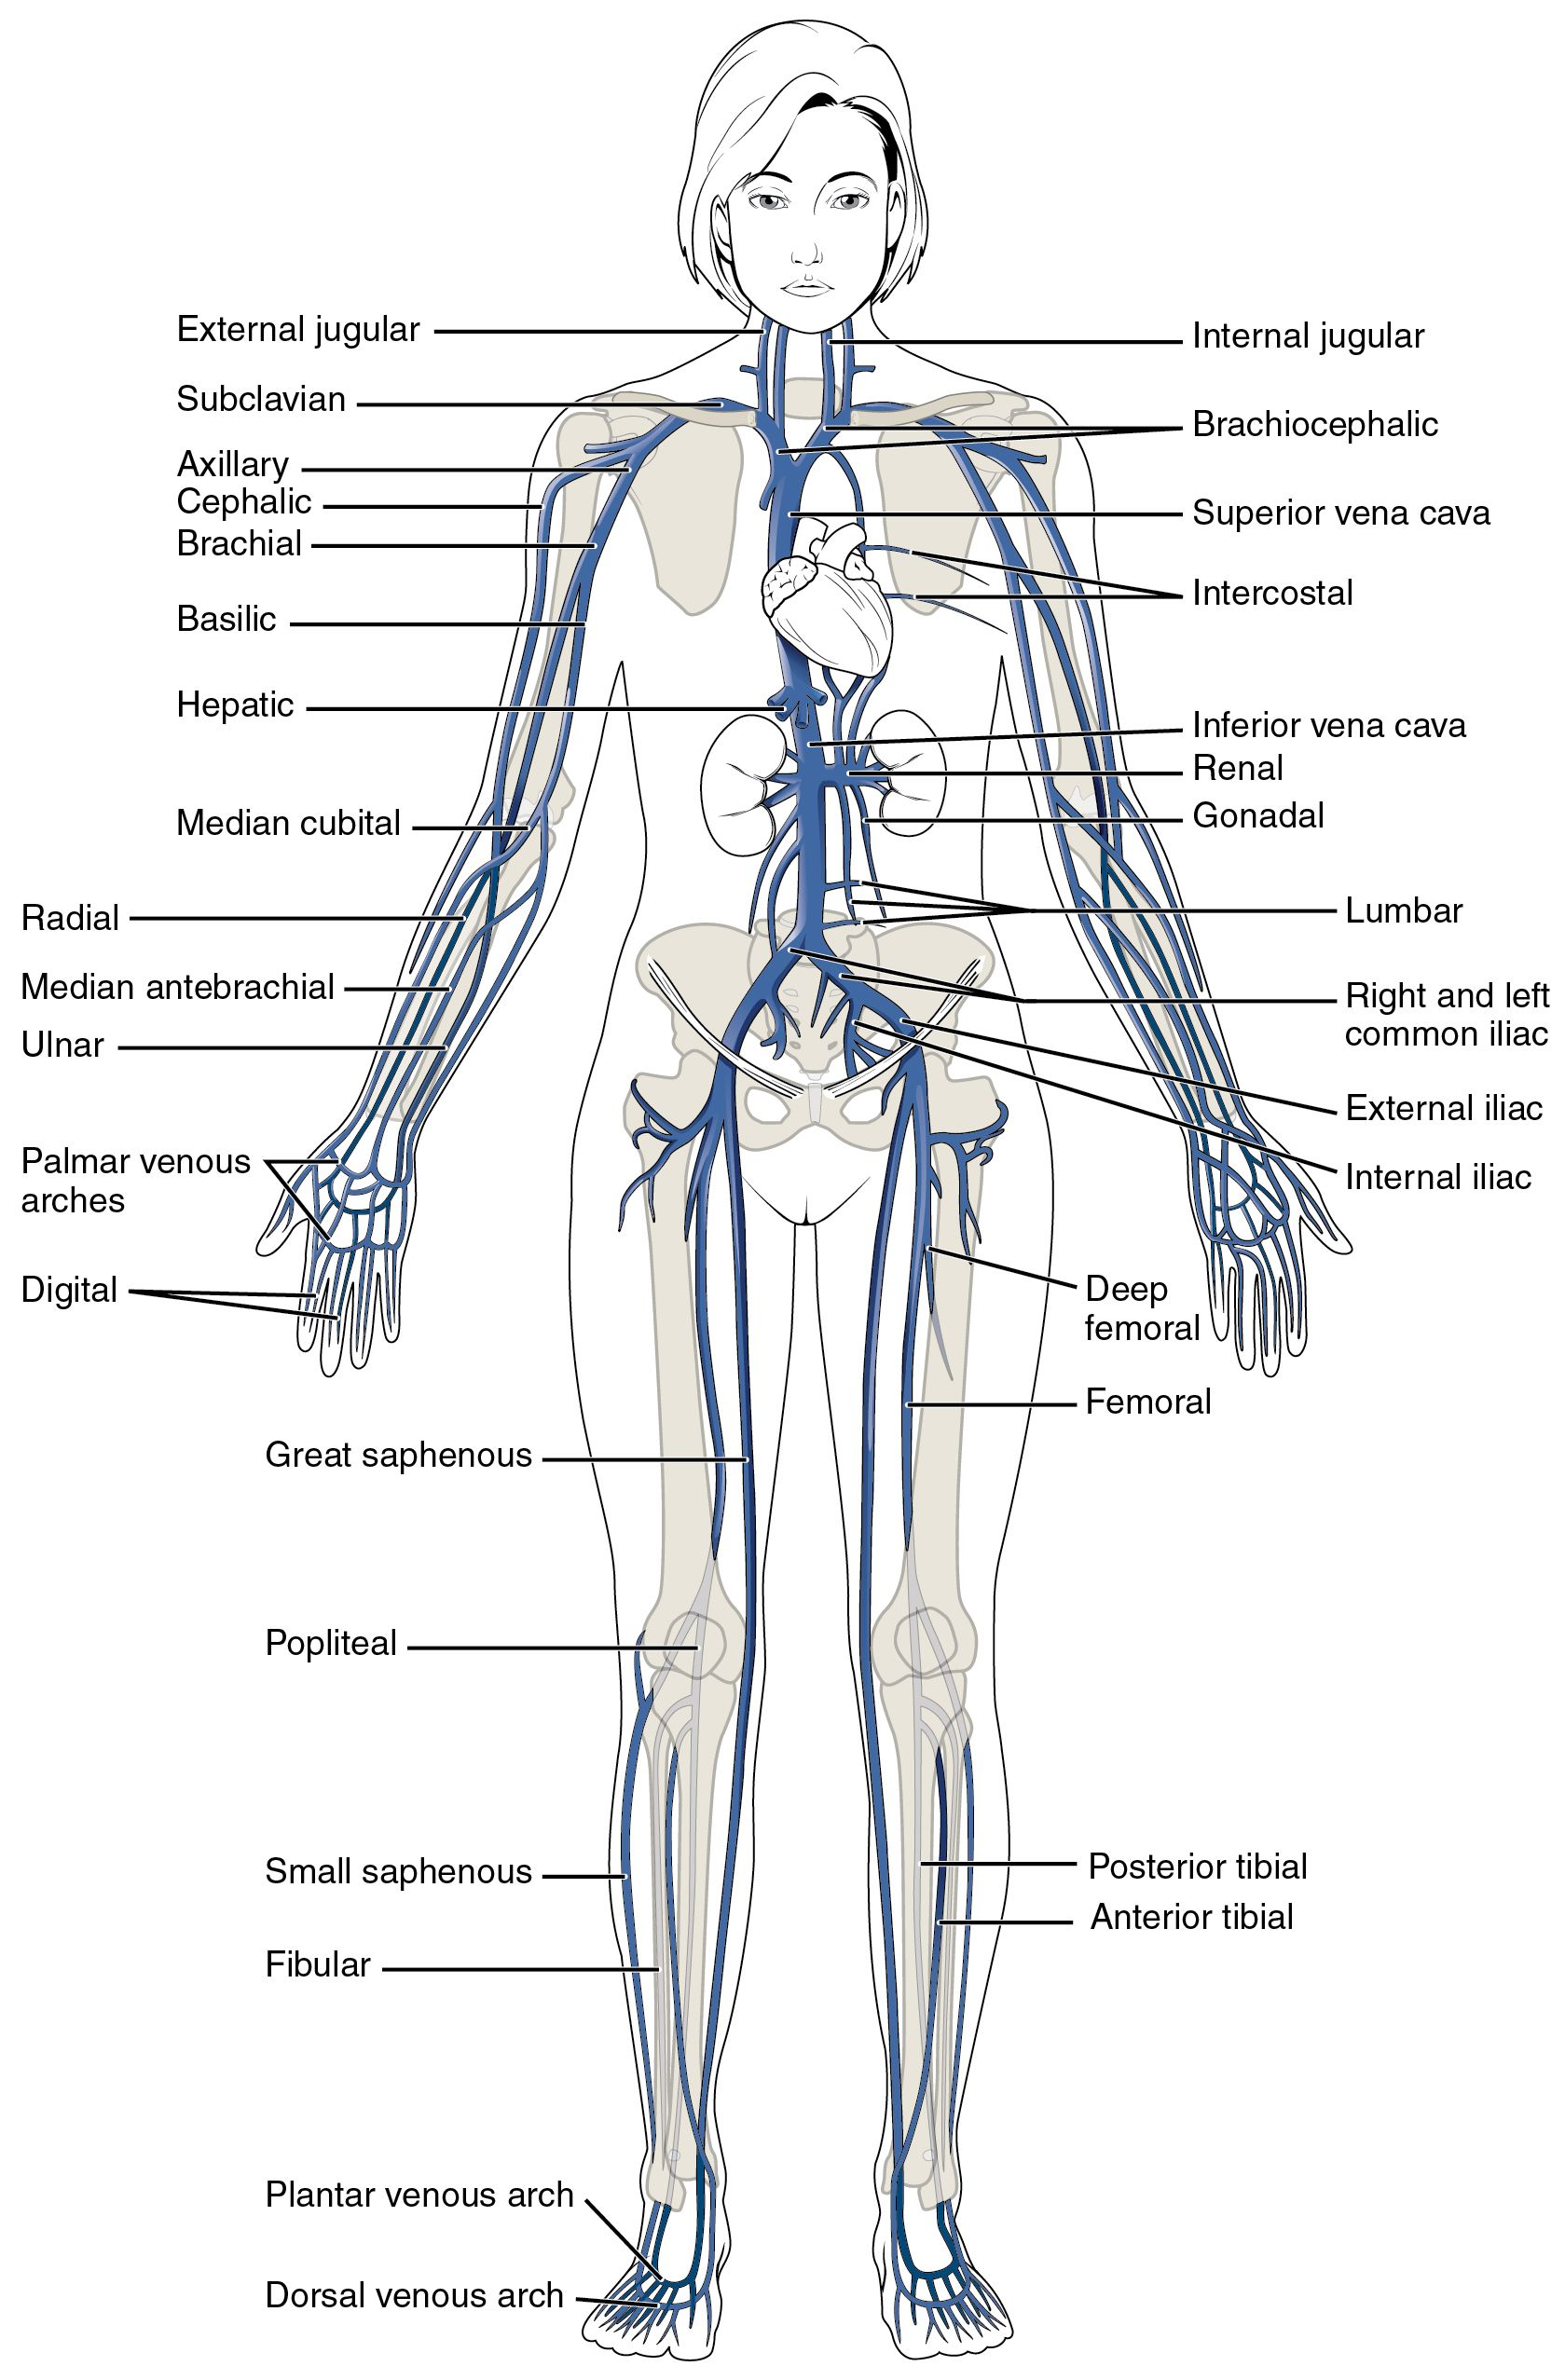 Major Systemic Veins of the body SimpleMed